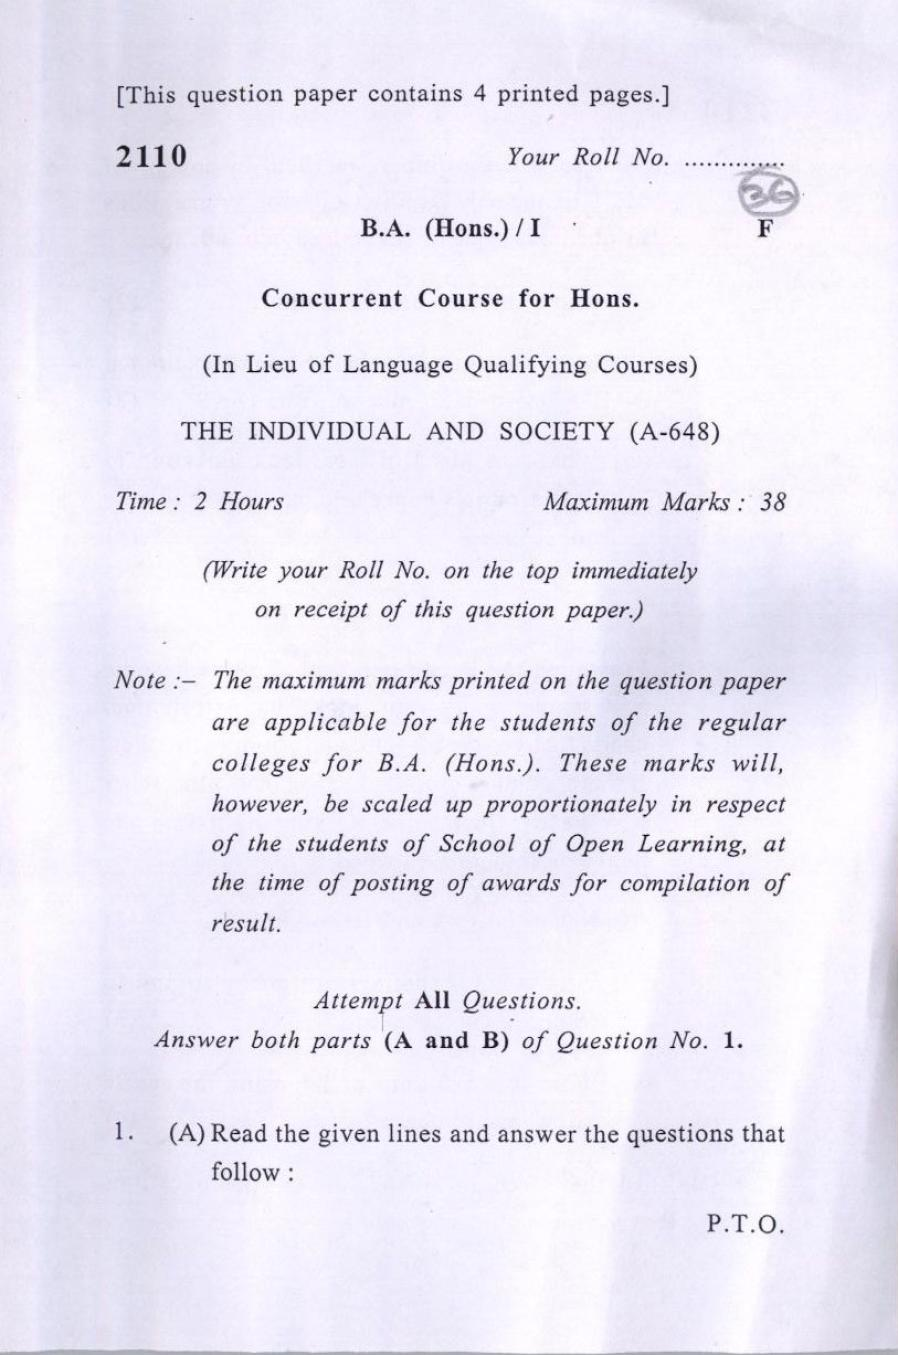 DU SOL Question Paper 2017 BA (Hons.) The Individual and Society - Page 1